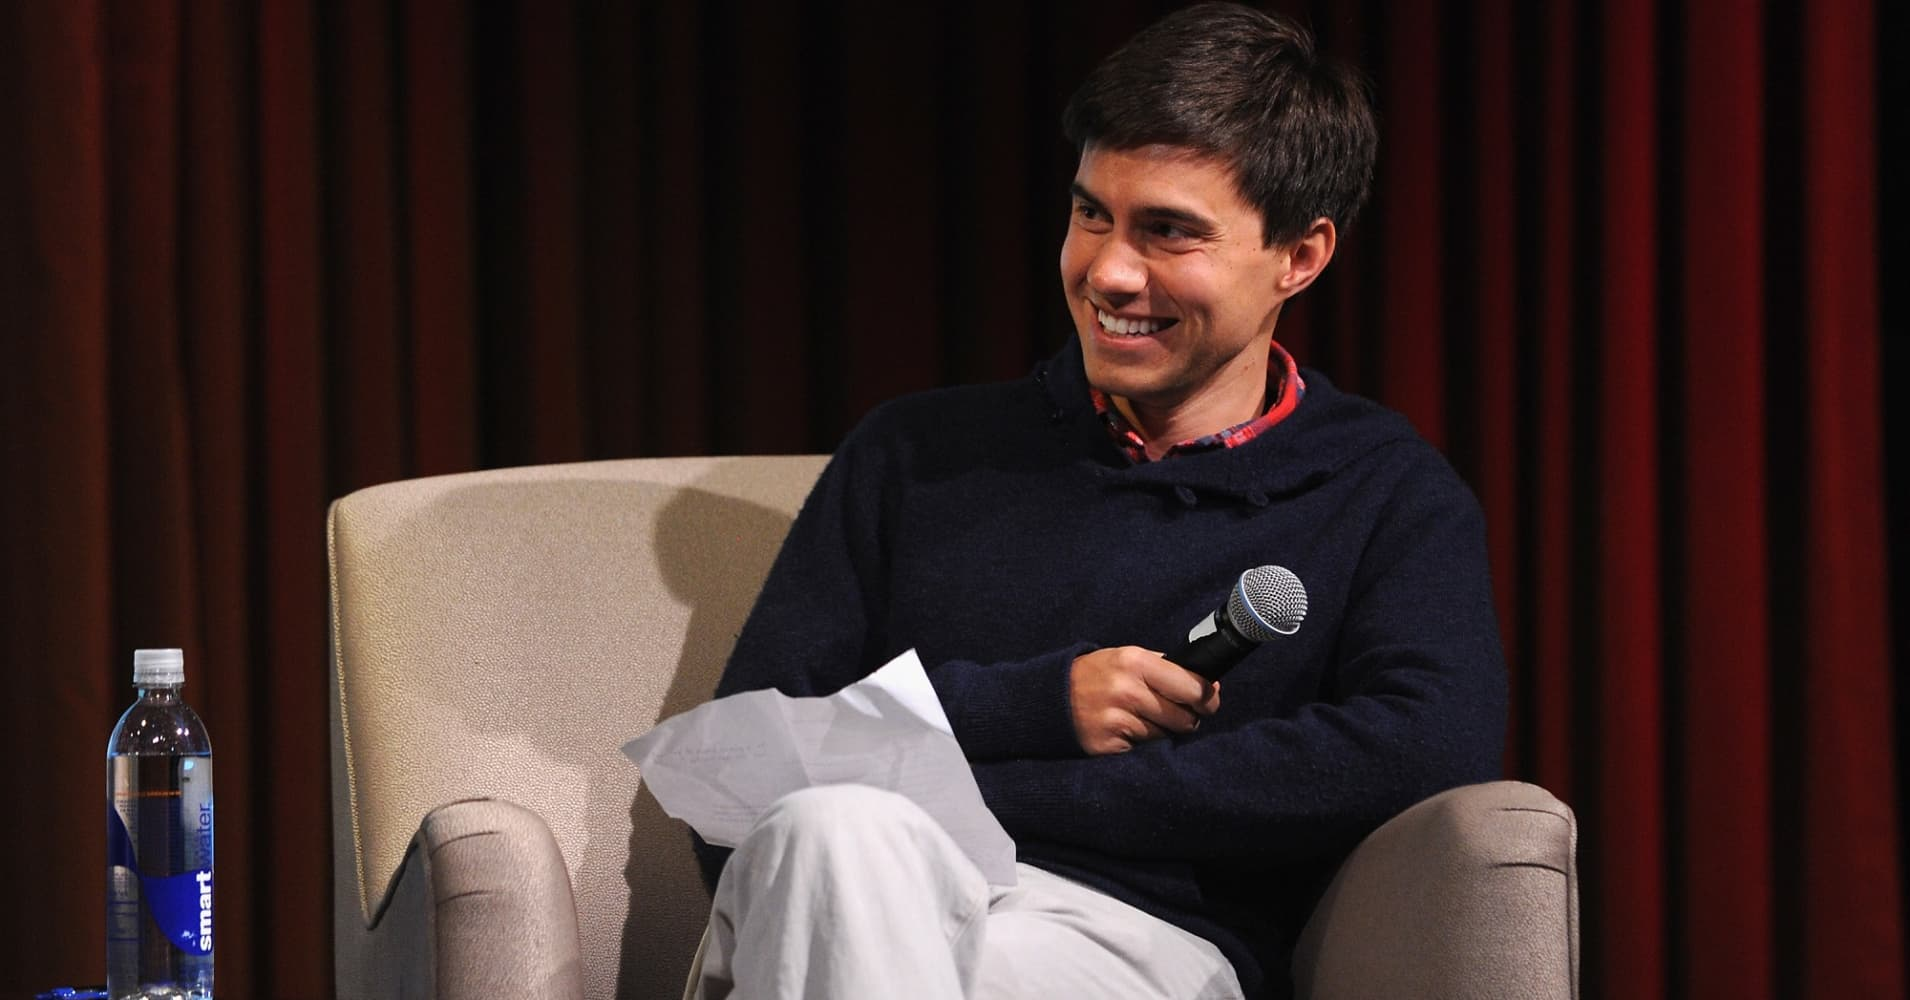 Ricky Van Veen is the co-founder of CollegeHumor and Facebook's head of content strategy